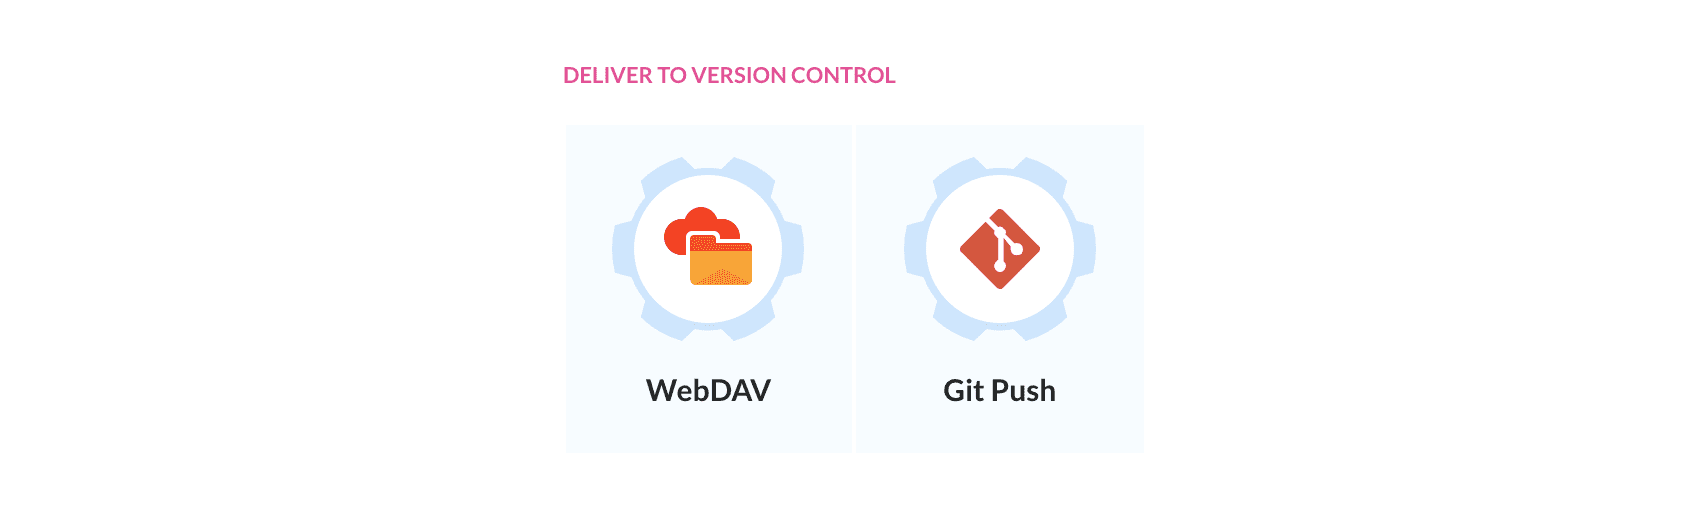 Version control actions